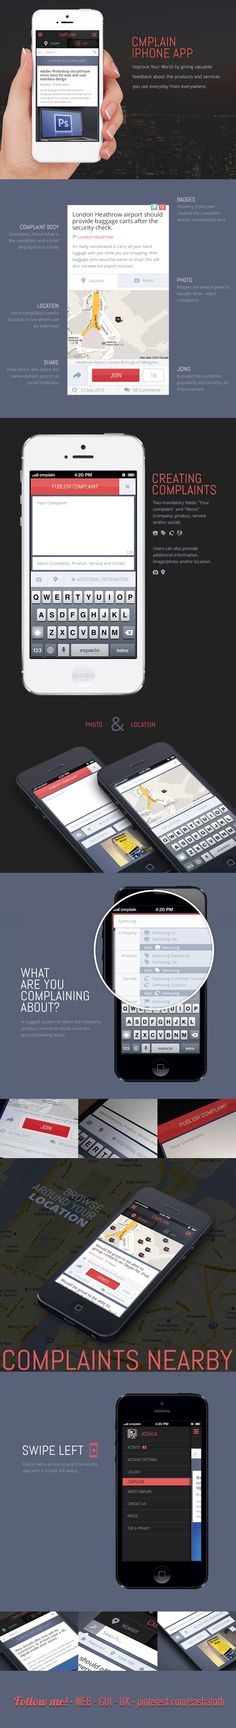 """CMPLAIN Mobile *** """"Improve Your World by giving valuable feedback about the products and services you use everyday from everywhere."""" by Leonardo Zakour, via Behance *** #app #ui #gui #behance"""